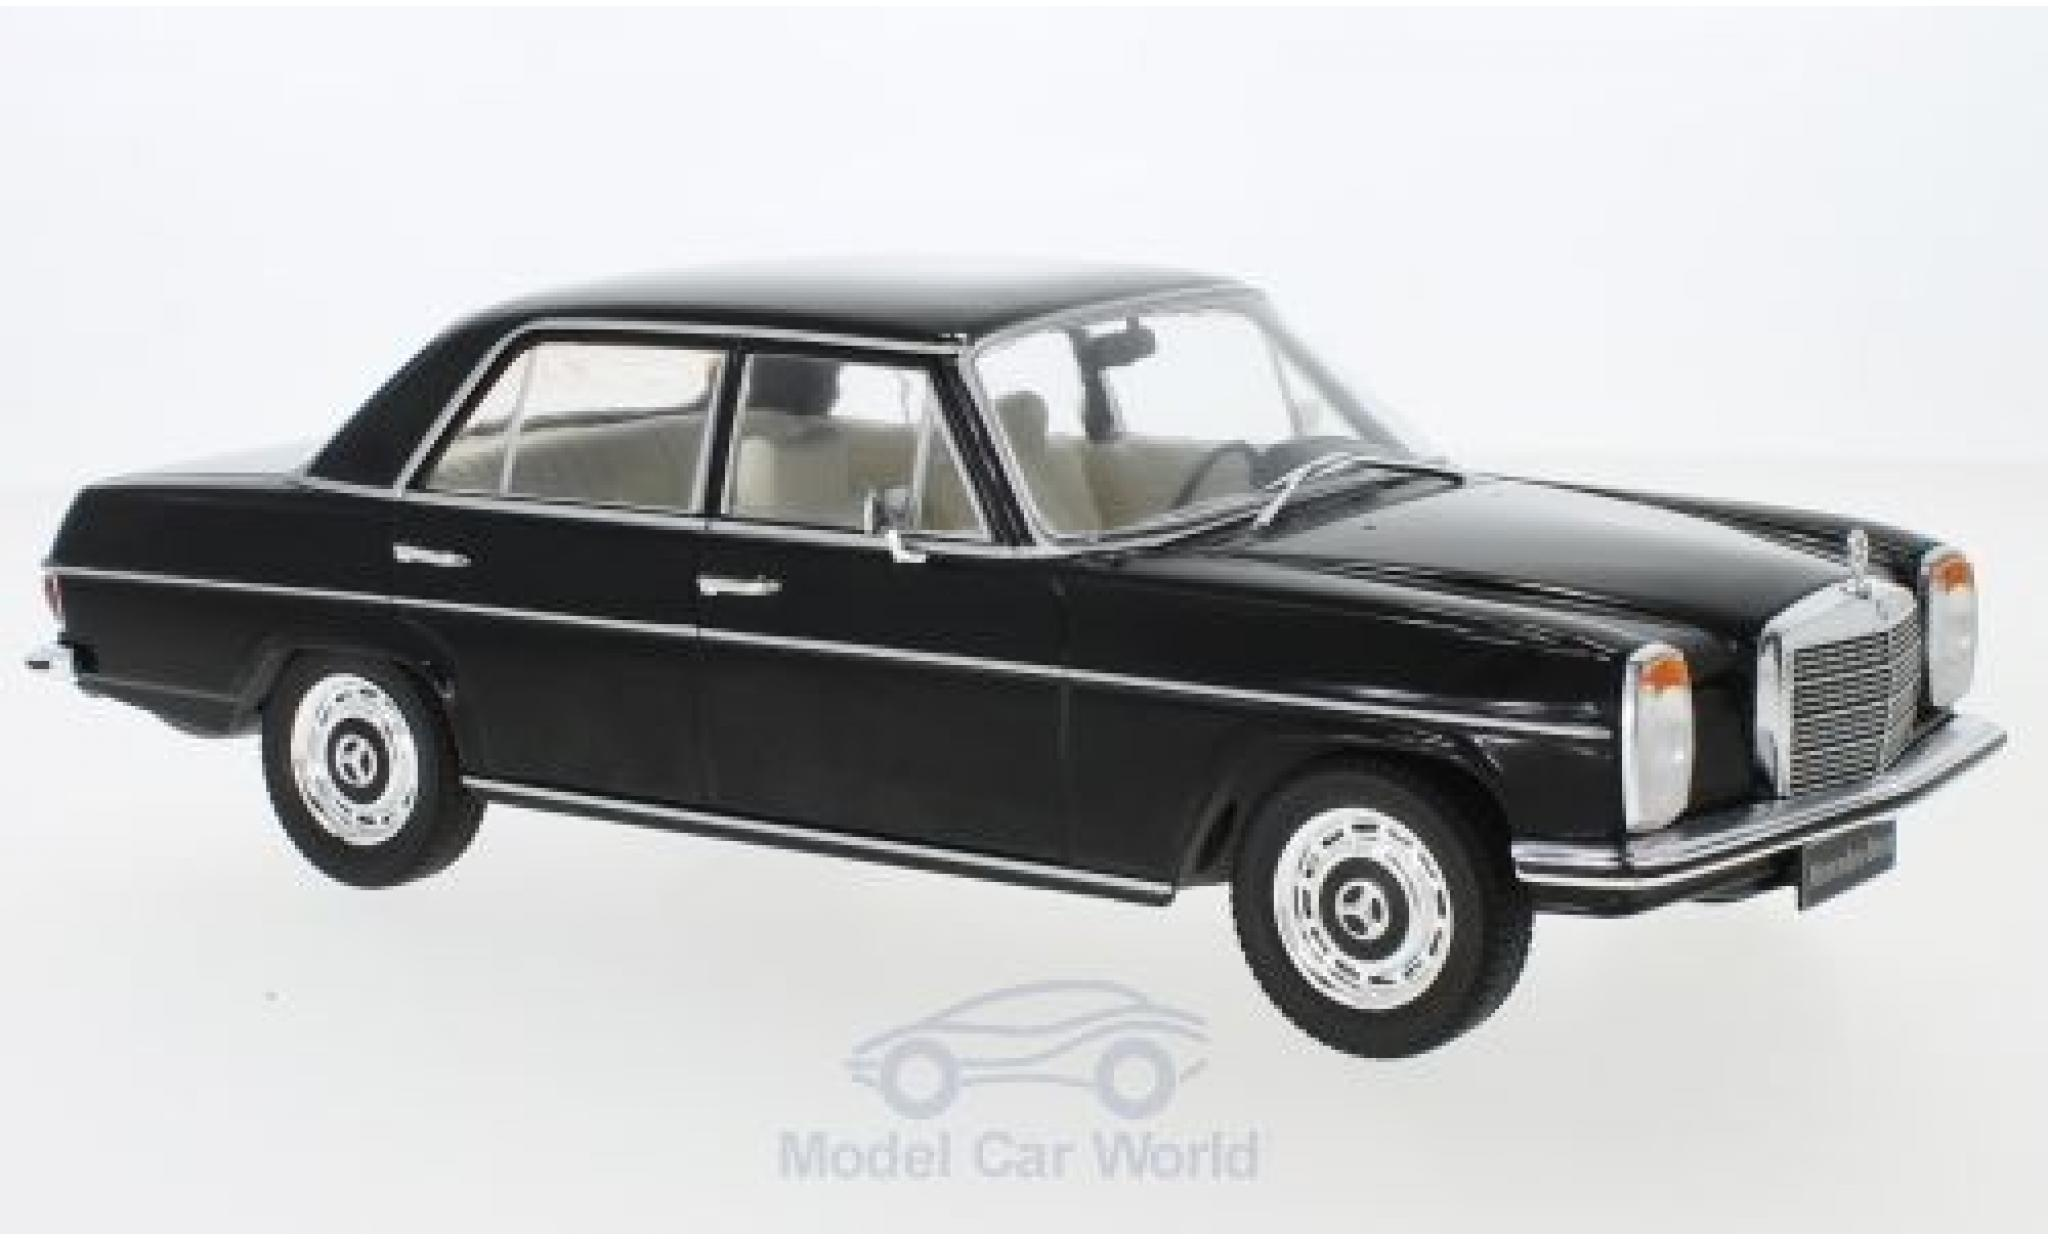 MCG 1:18 MB Mercedes Benz 220D W115-1972 black